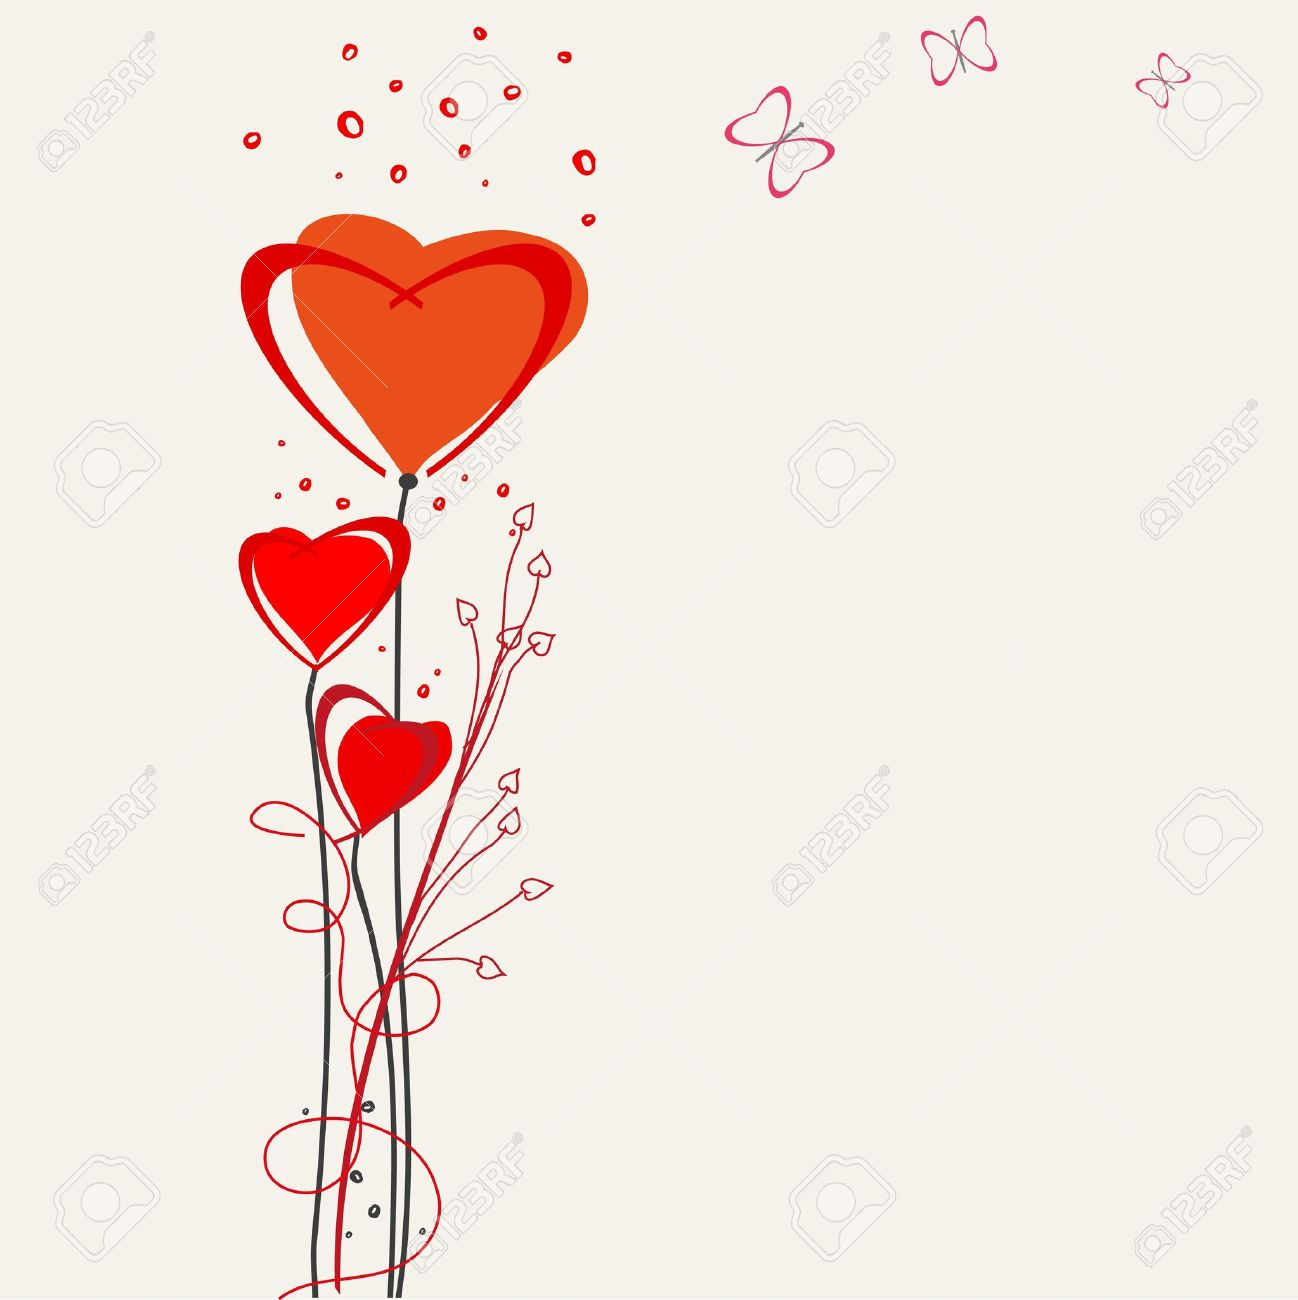 Romantic Valentine Backgrounds. Valentines Day. Royalty Free ...